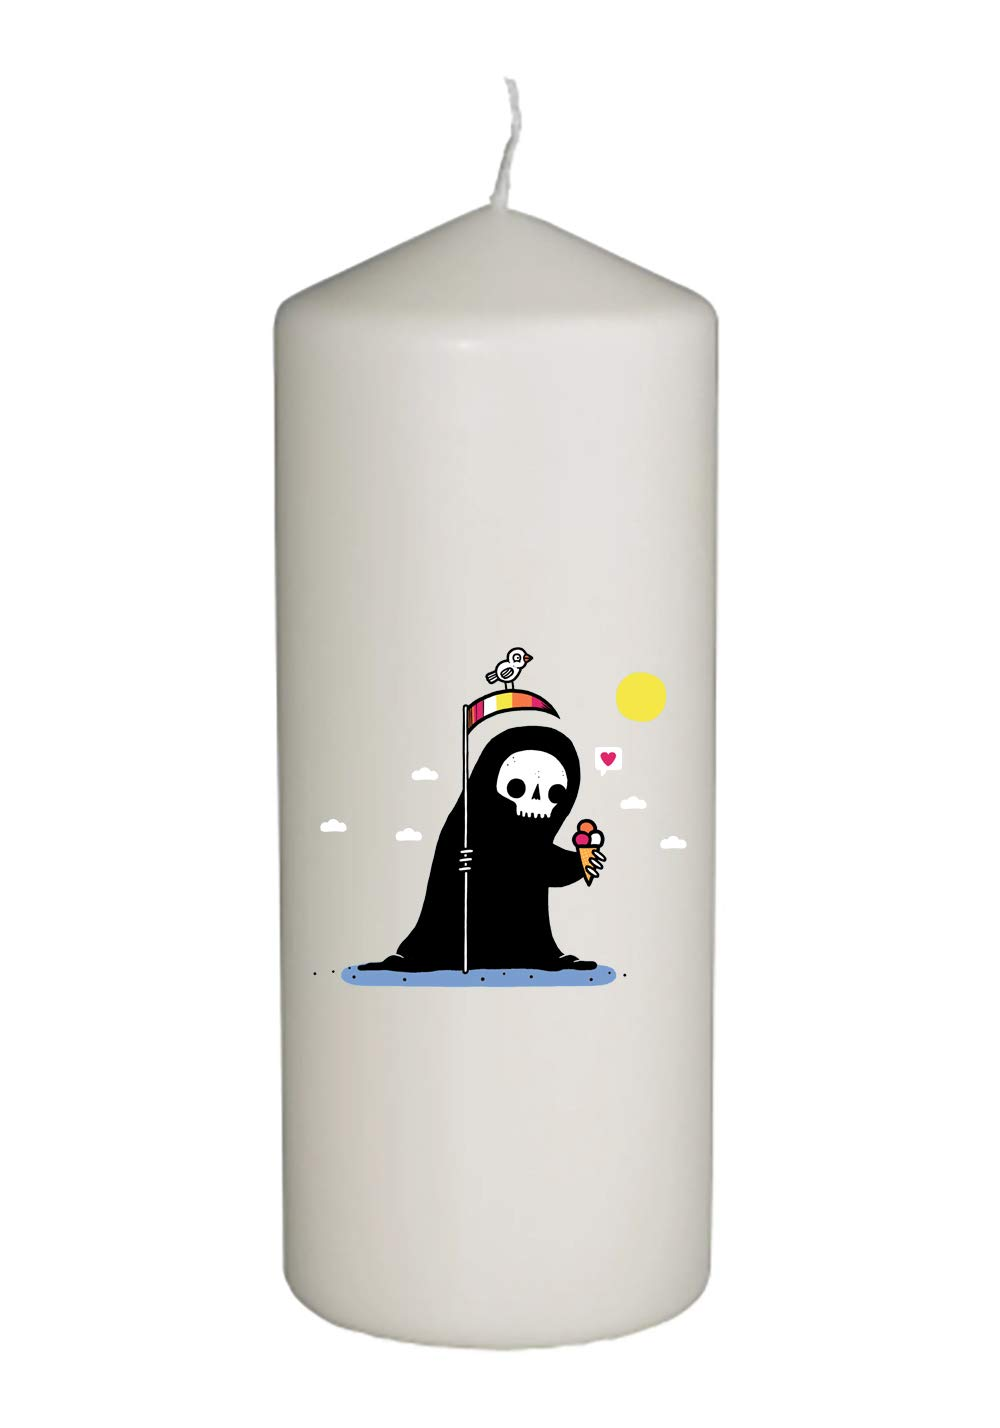 Randy Otter Happy Death Grim Reaper w/Ice Cream Thick White in Full Color Unity Candle - Wedding, Baptism, Funeral, Special Event Decoration (6 inches Tall)